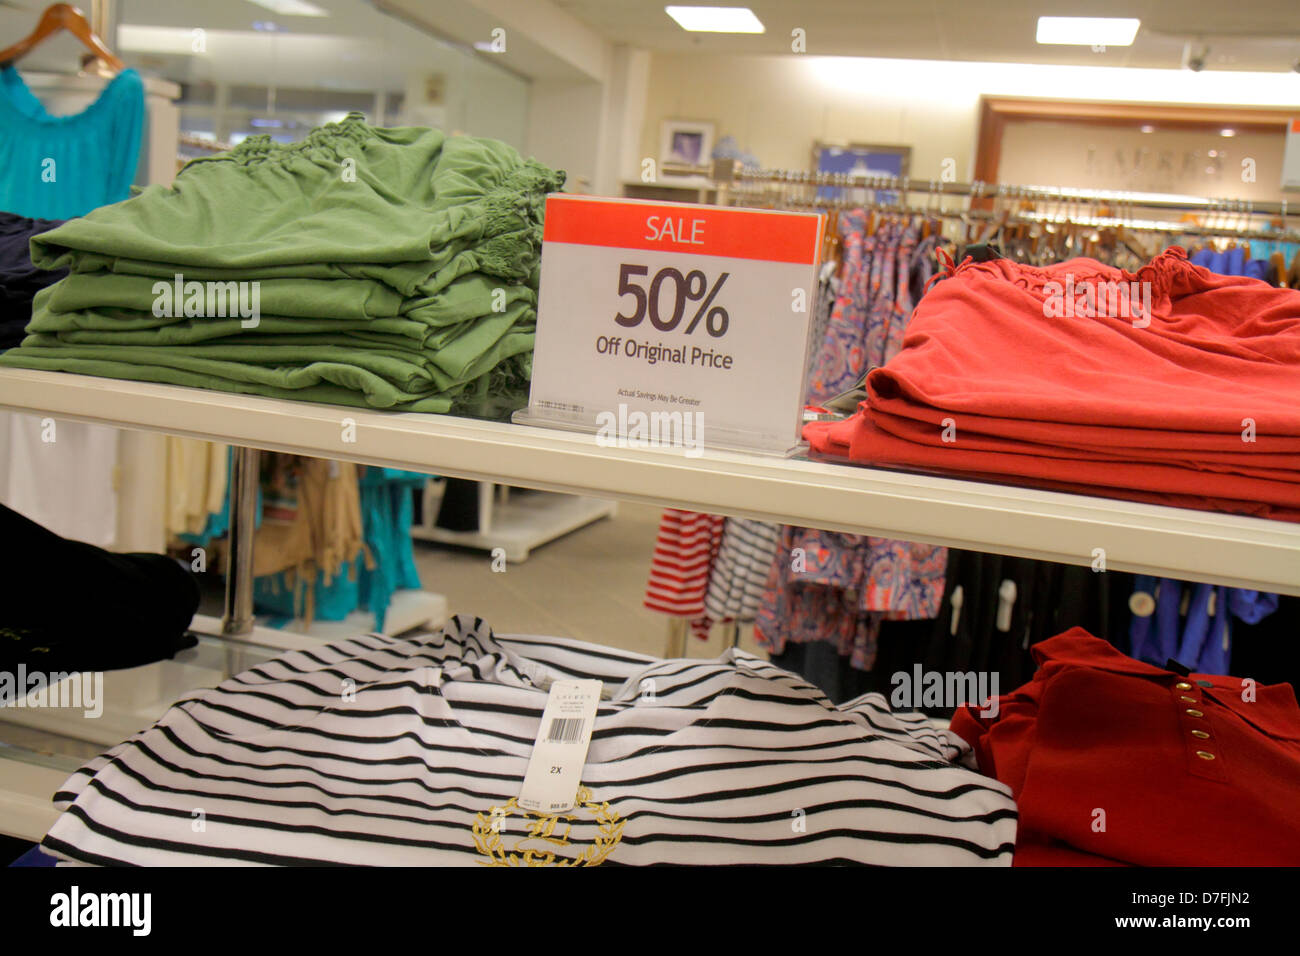 The Wear Red Sale Wear Red get an extra 20 percent off extra 10 percent off